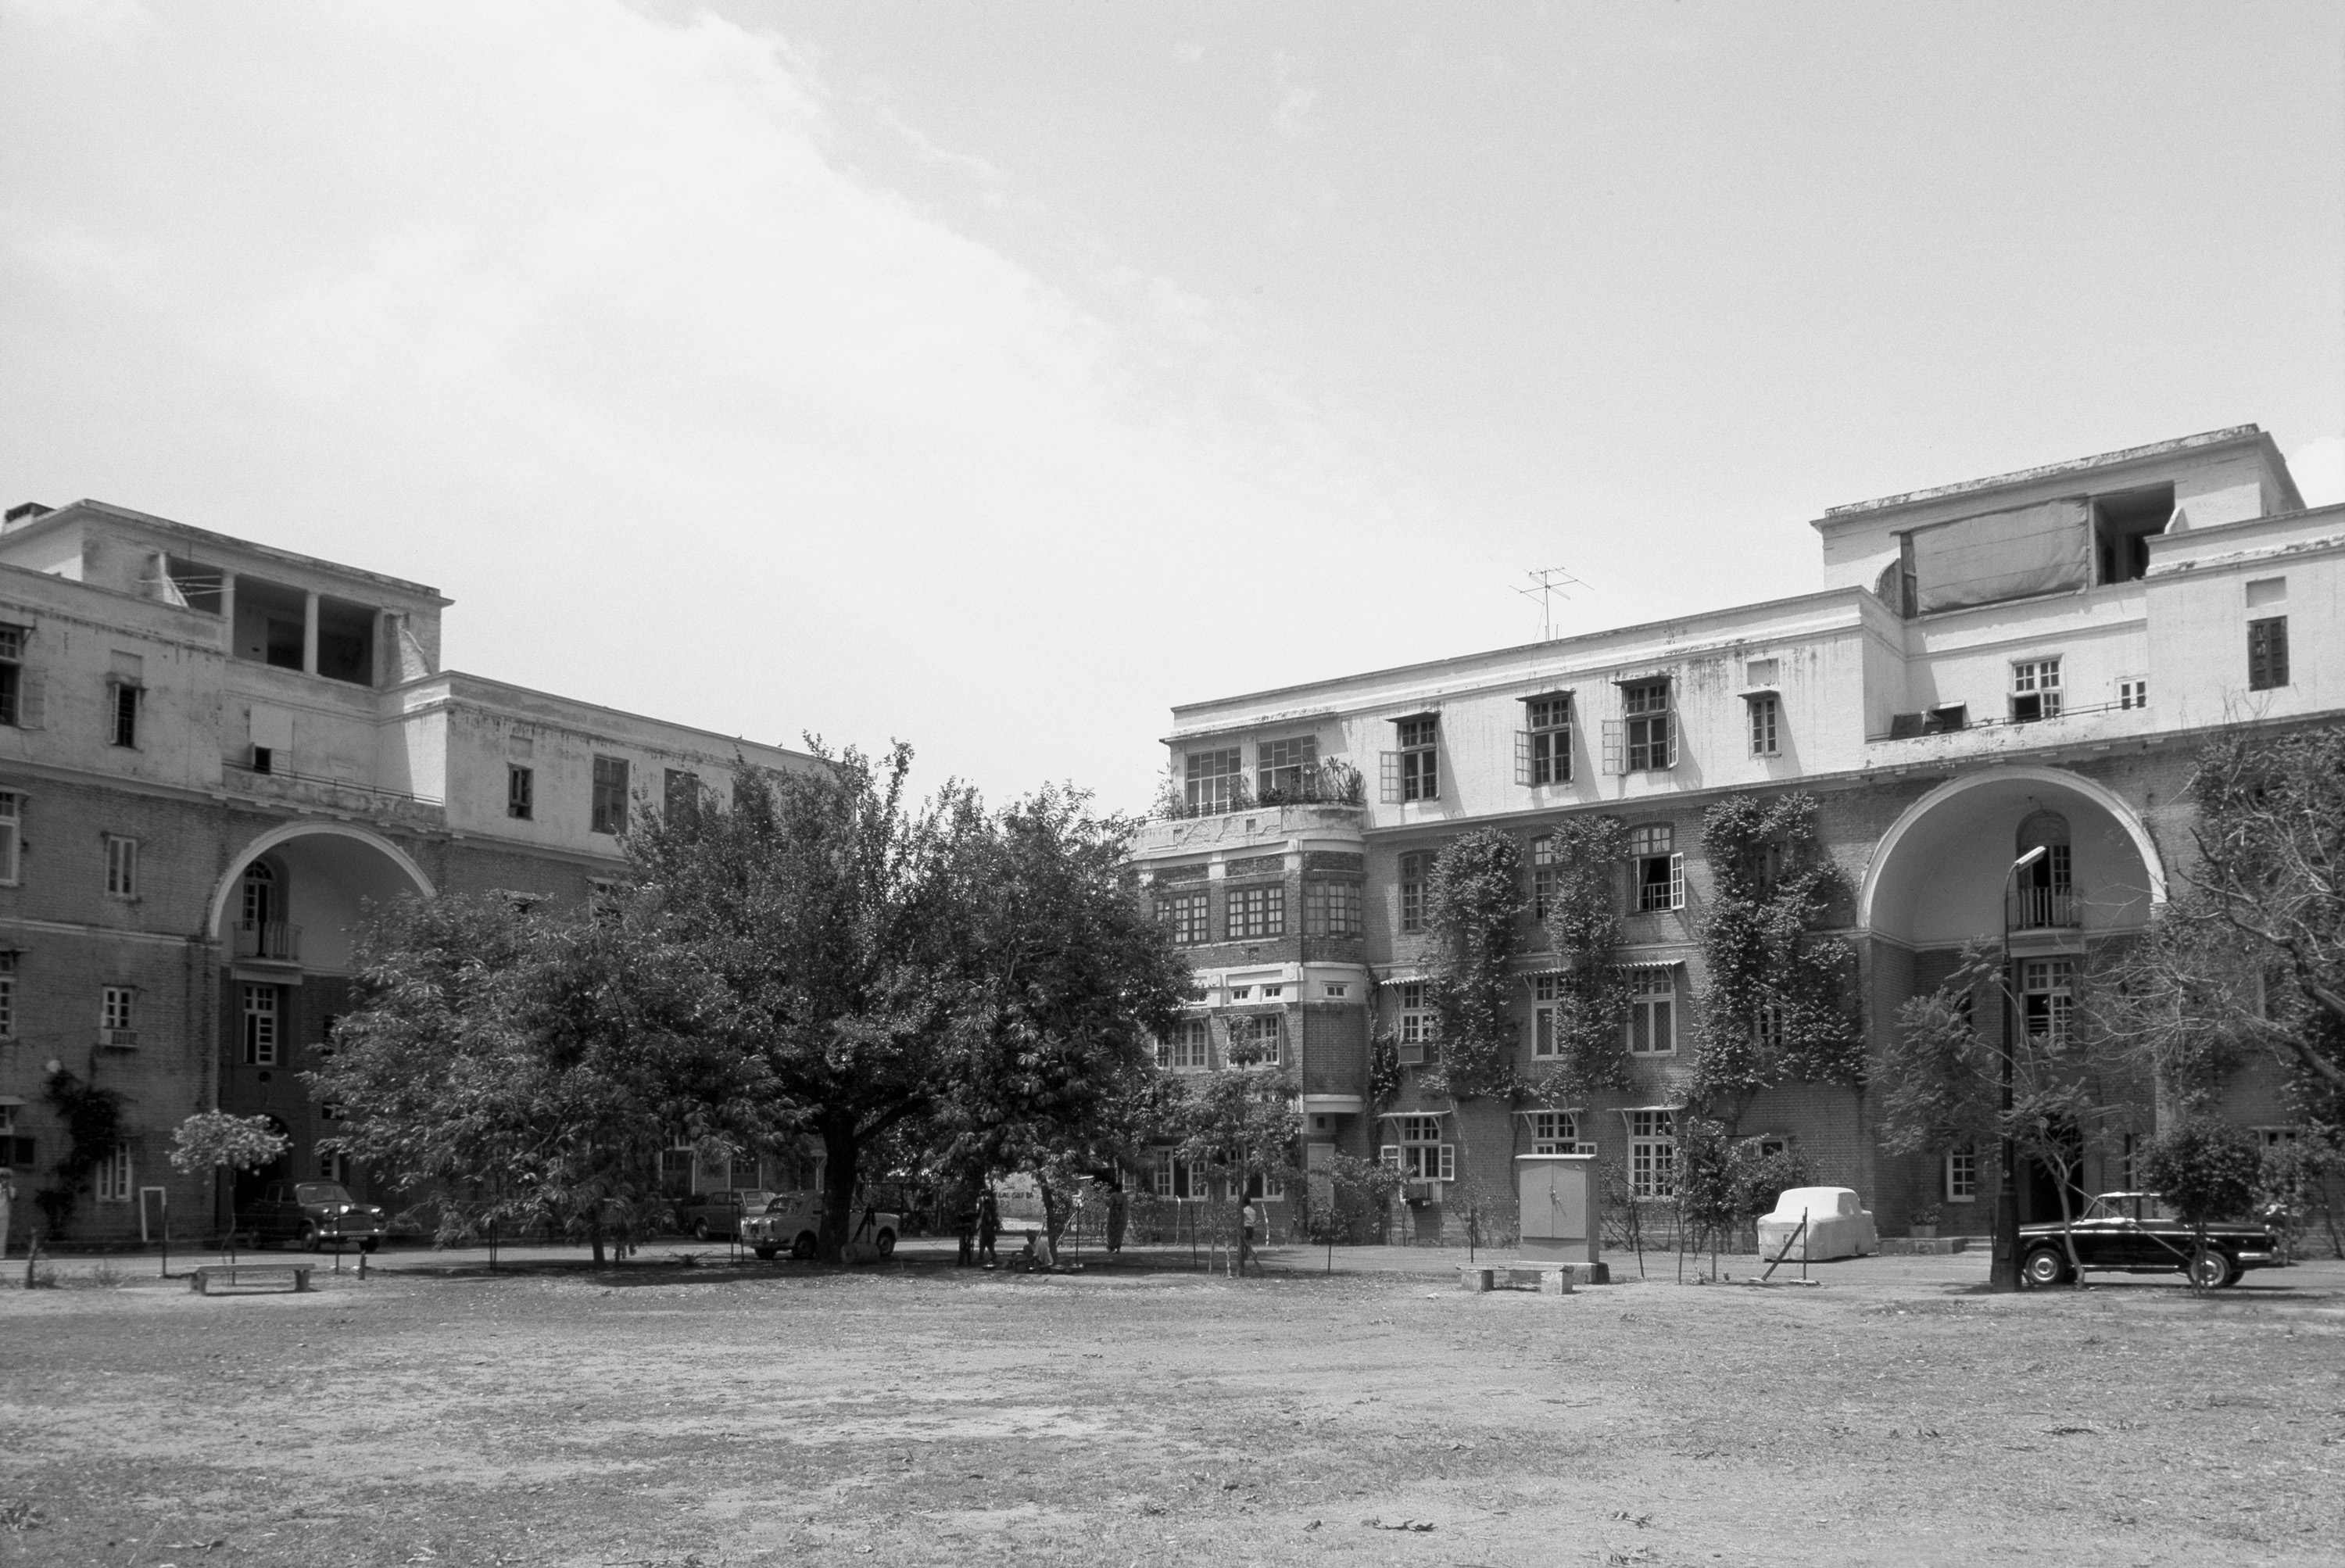 A journey of 100 years of Architecture in India | Part 01 - 1945 Sujan Singh Park Complex, New Delhi